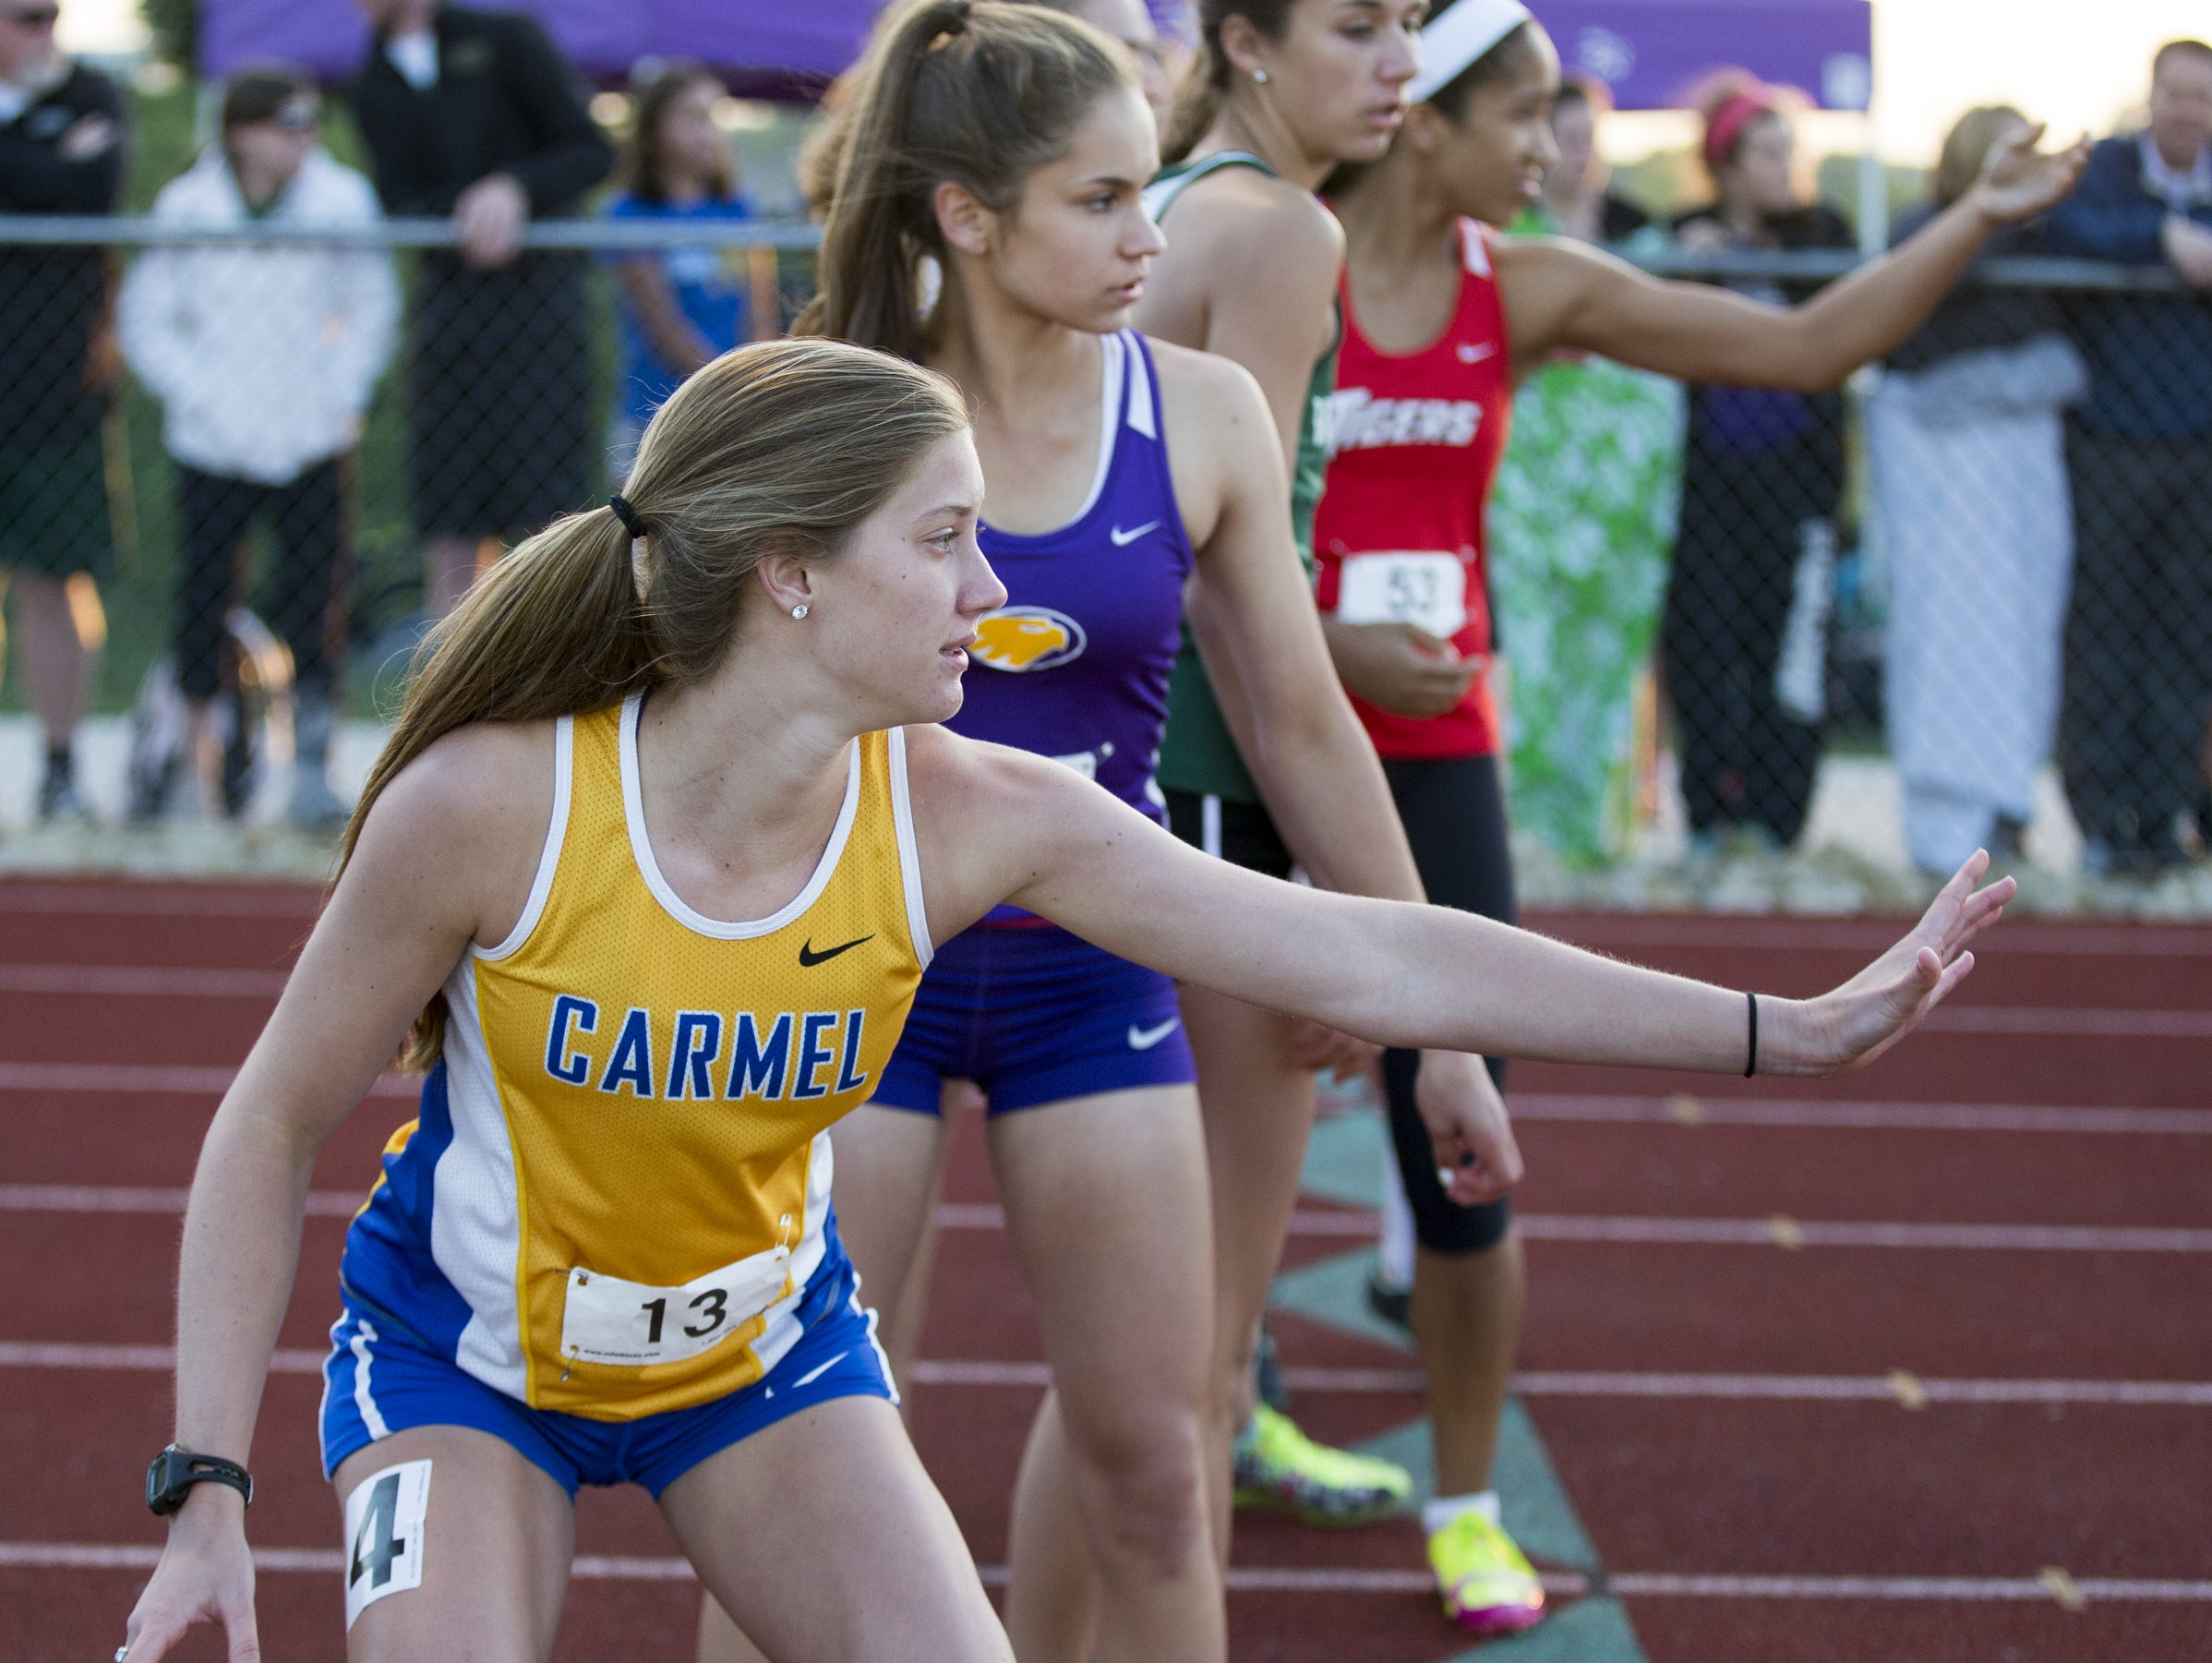 Competitors line up for an exchange, including Haley Harris of winning team Carmel High School, during the 4 X 400 meter race, IHSAA Girls Track and Field Sectional #13, Guerin Catholic High School, Noblesville, Tuesday, May 19, 2015.